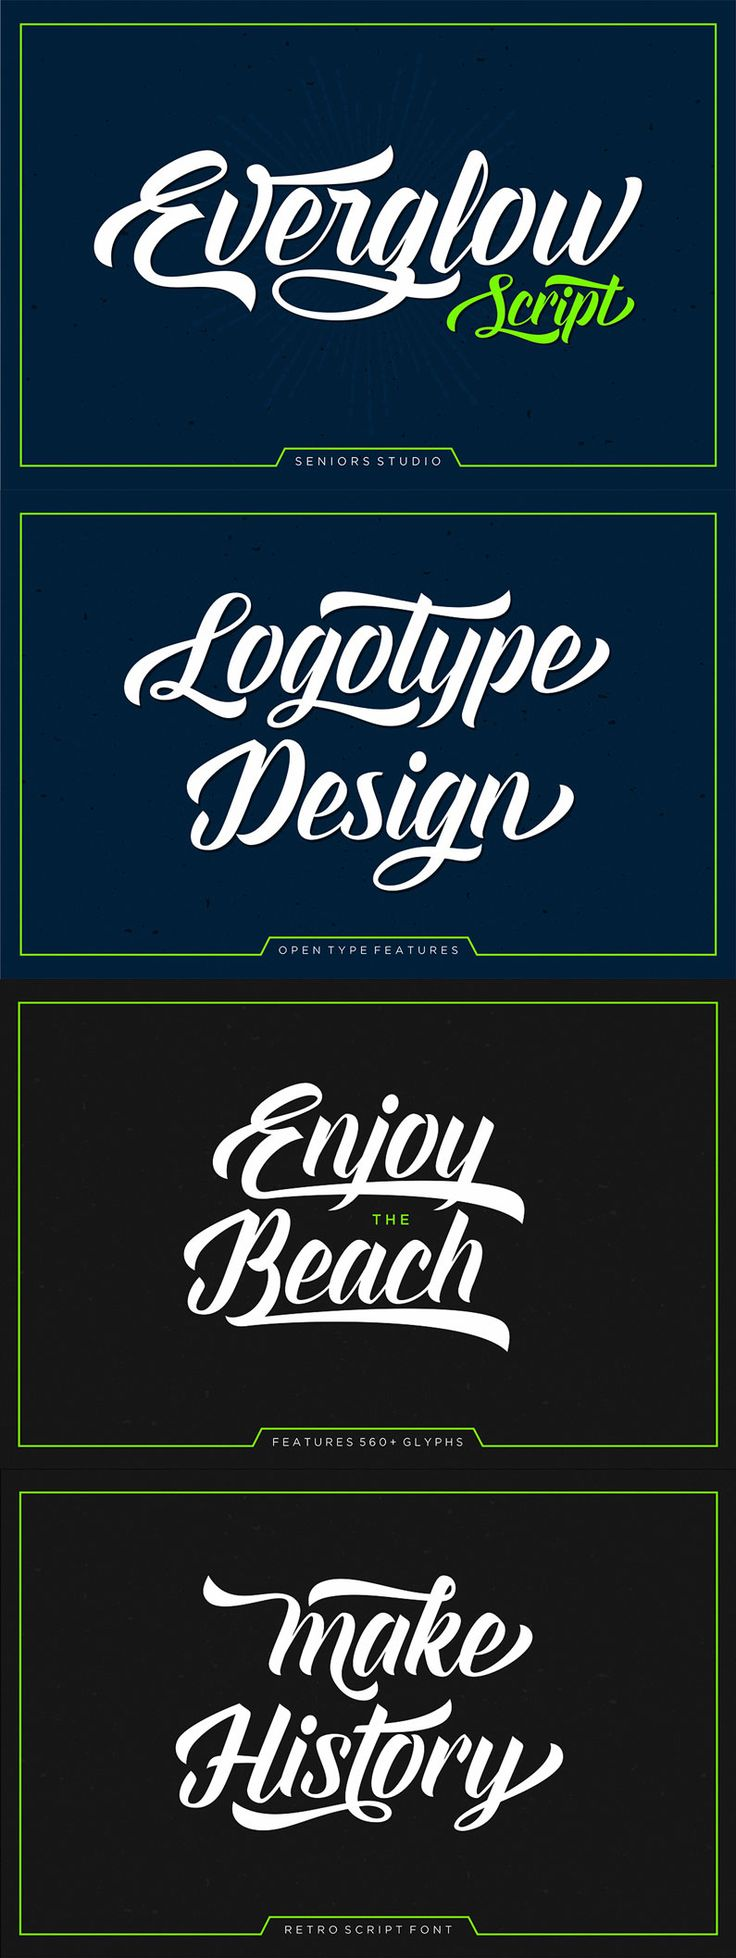 Everglow Script is a retro script font, bold, classic and fun vintage script.Can be used for various purposes.such as logos, t-shirt, letterhead, signage, news, wedding invitation, posters, badges etc.